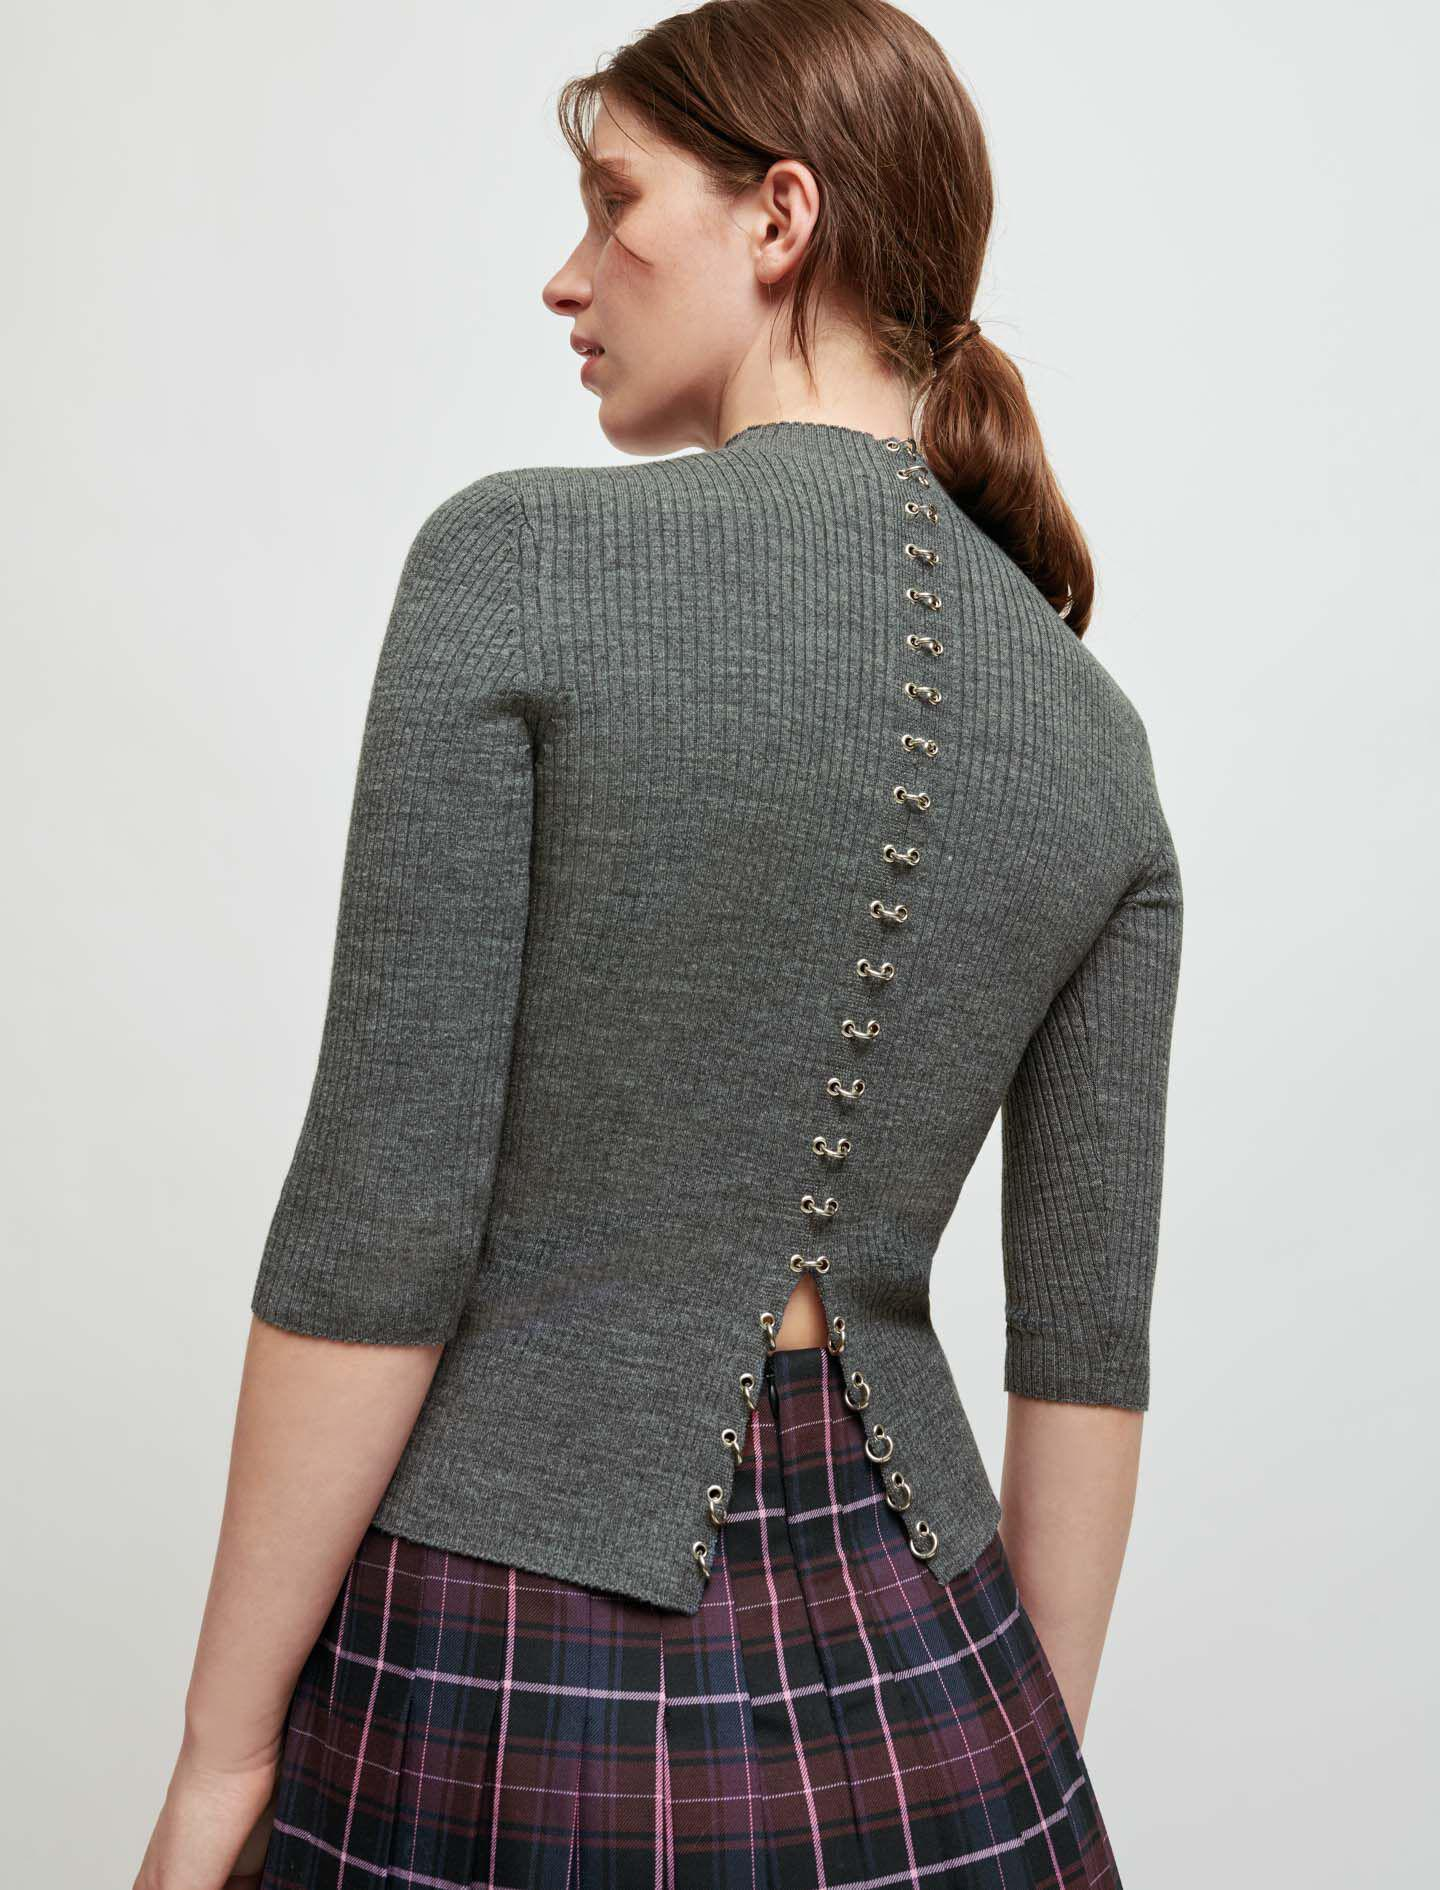 SWEATER WITH COLLAR AND PIERCINGS